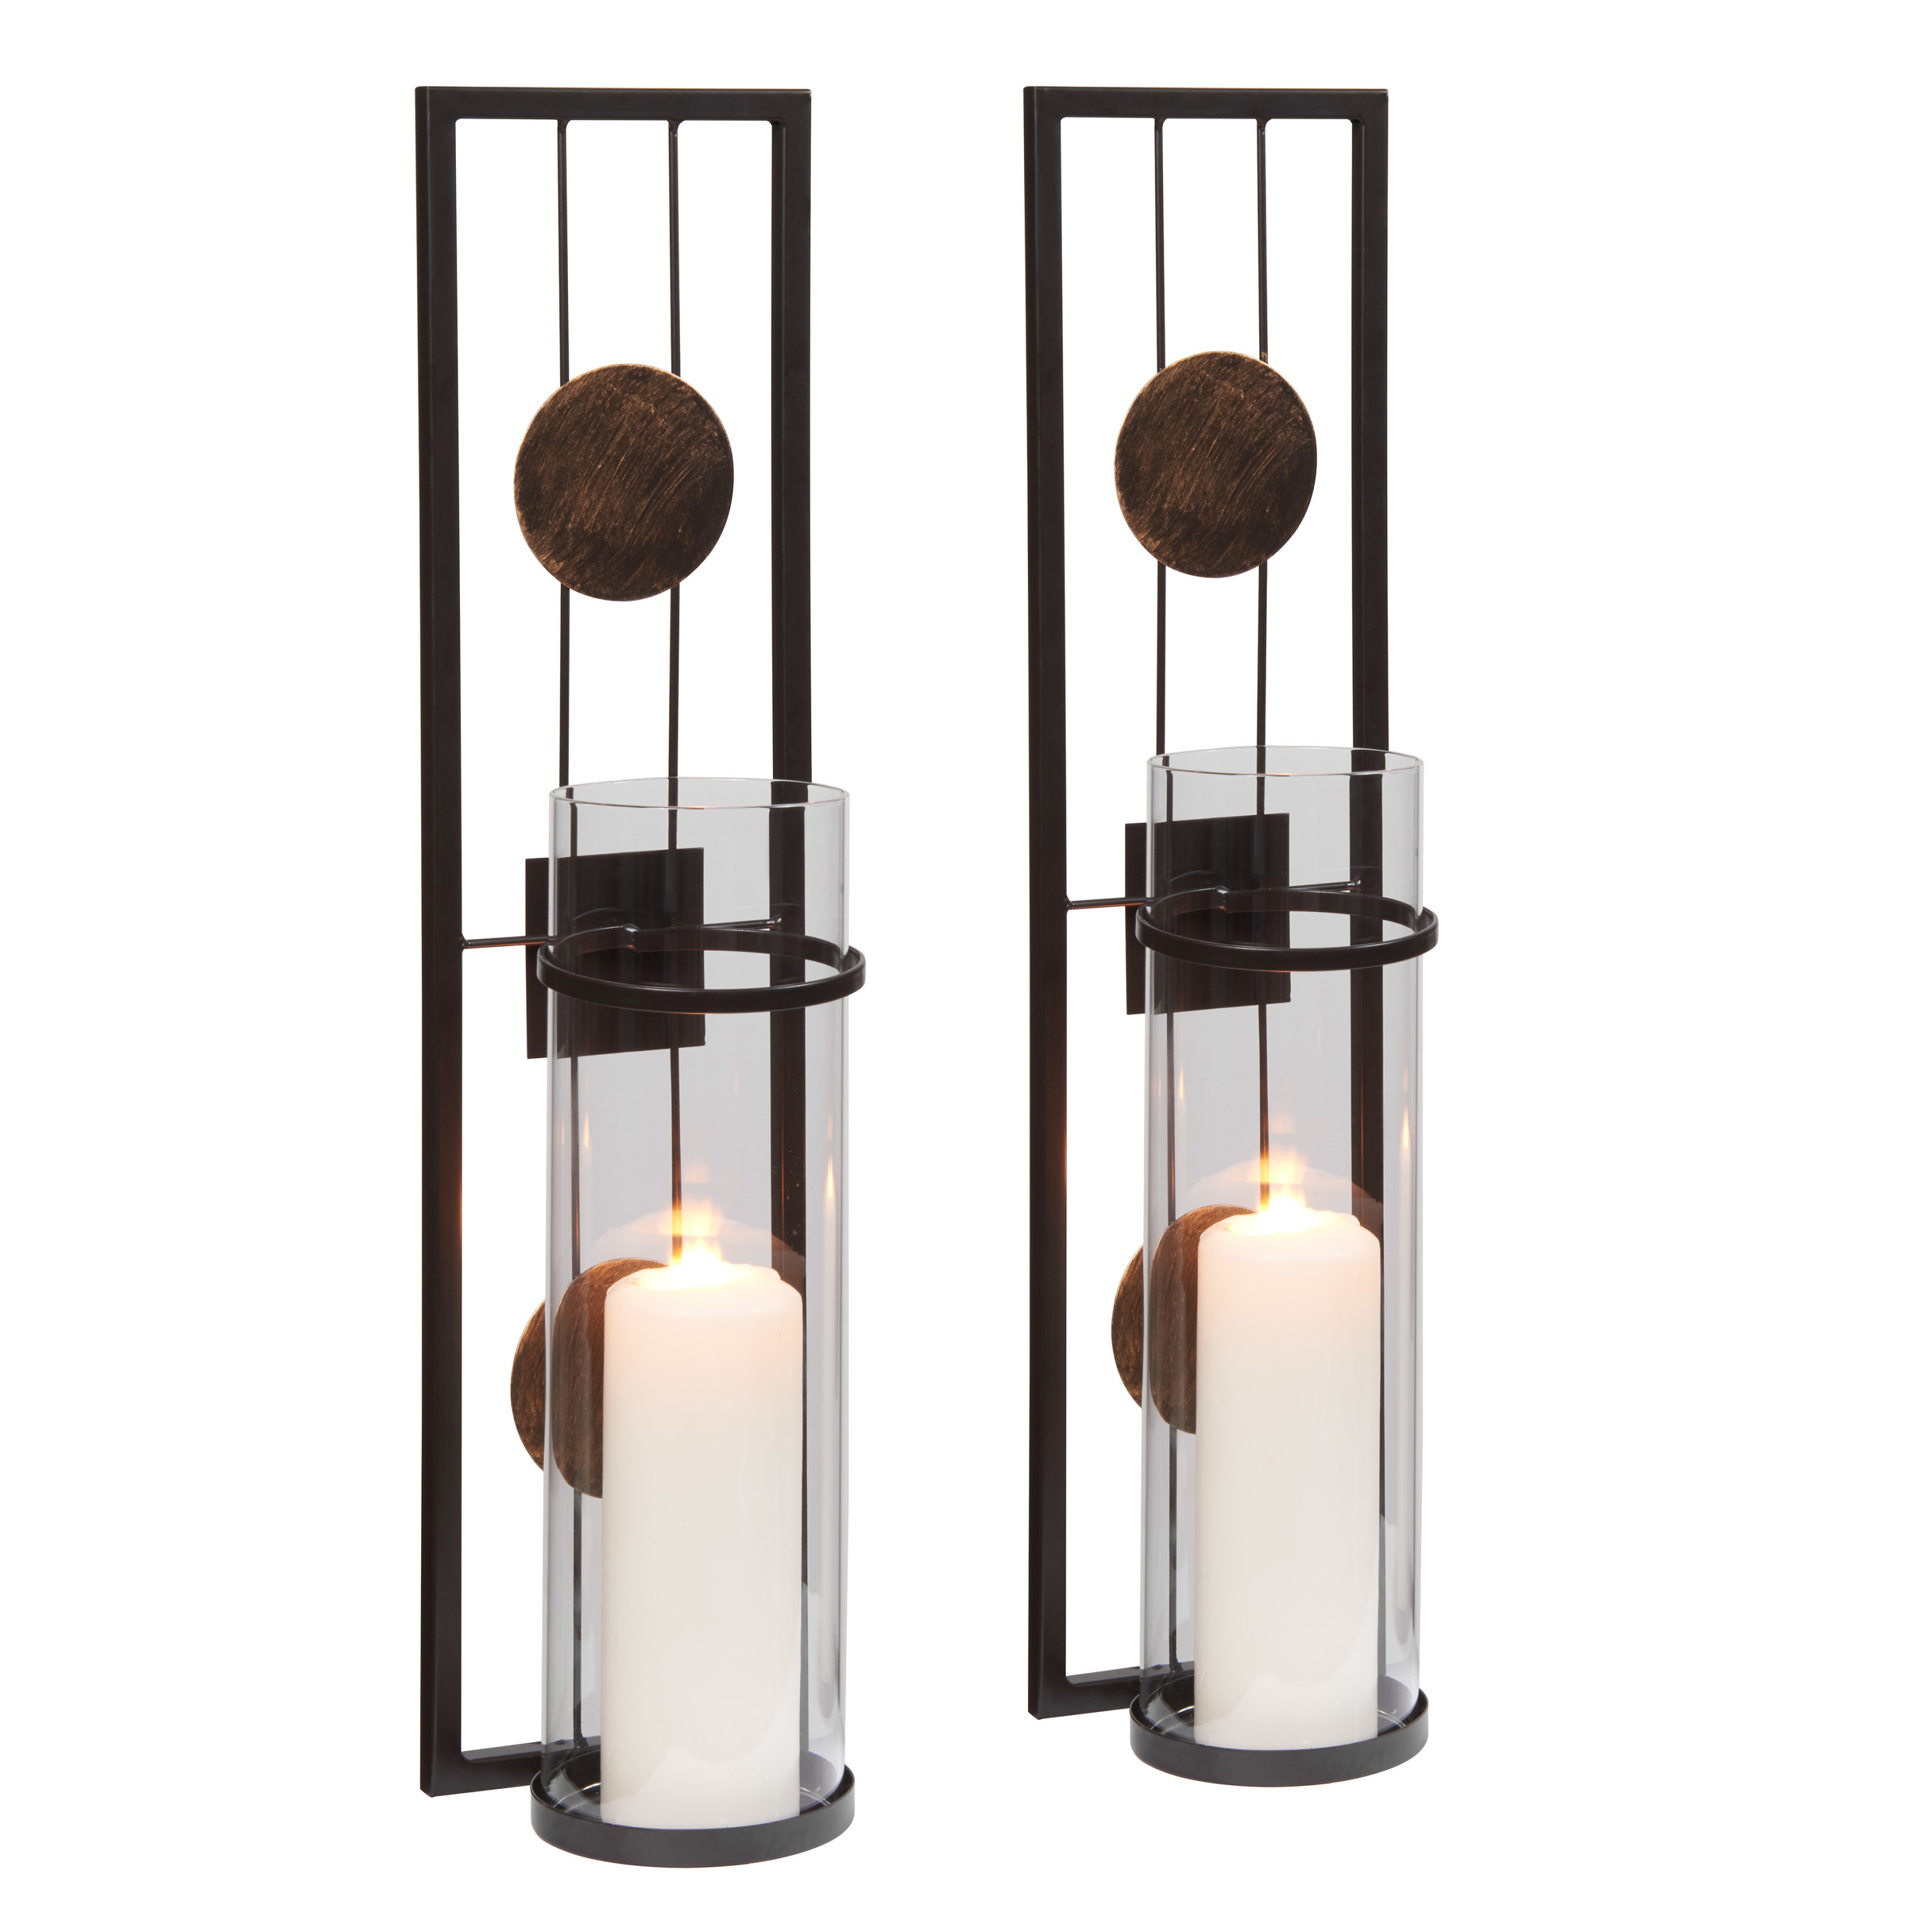 Danya B. 20 in. Modern Floating Decorative Metal Medallion Pillar Candle Sconces – Wall Mount – Set of 2